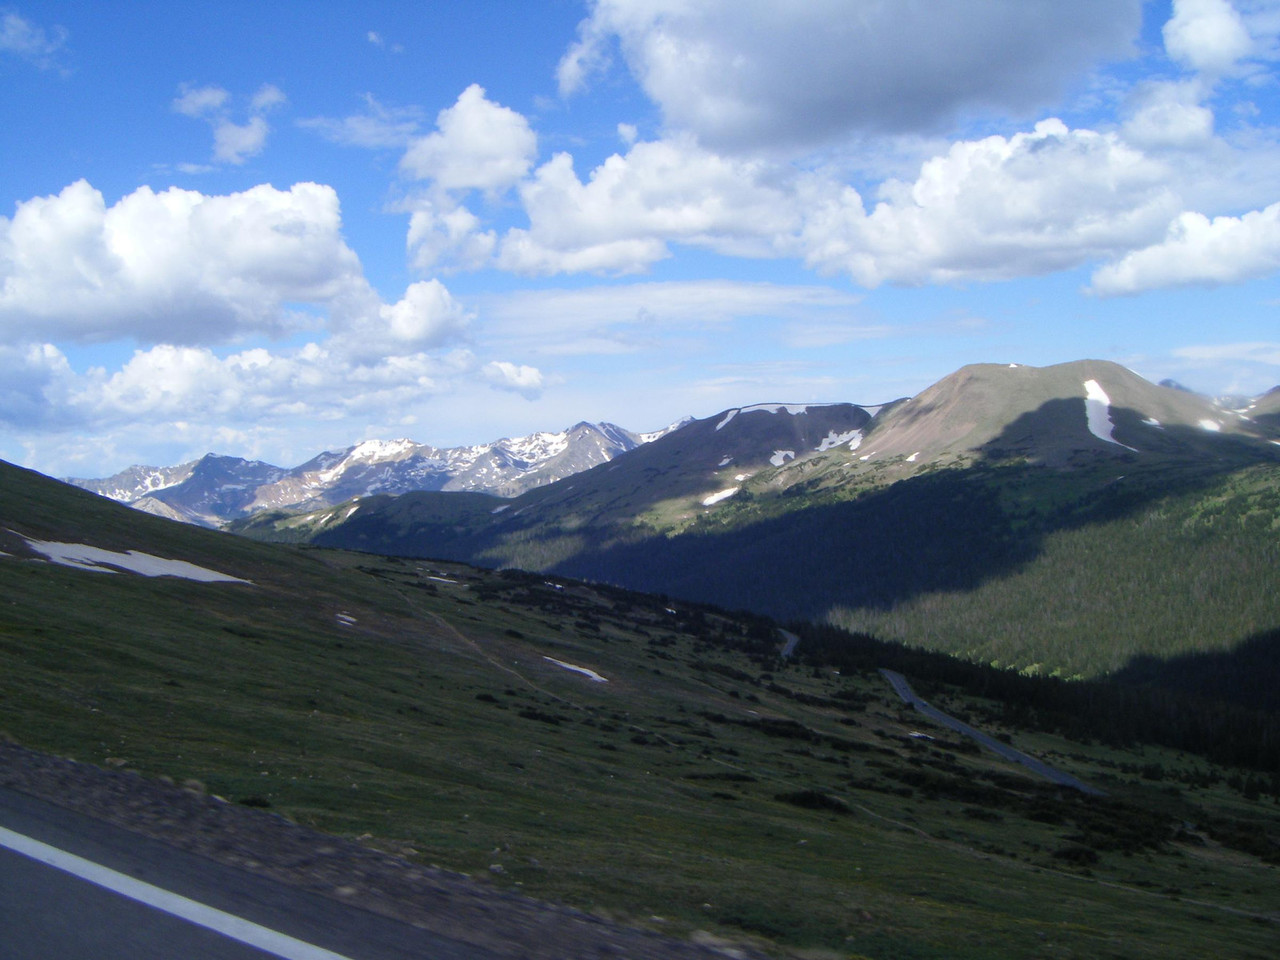 Beartooth Hwy 212 into MT from Yellowstone